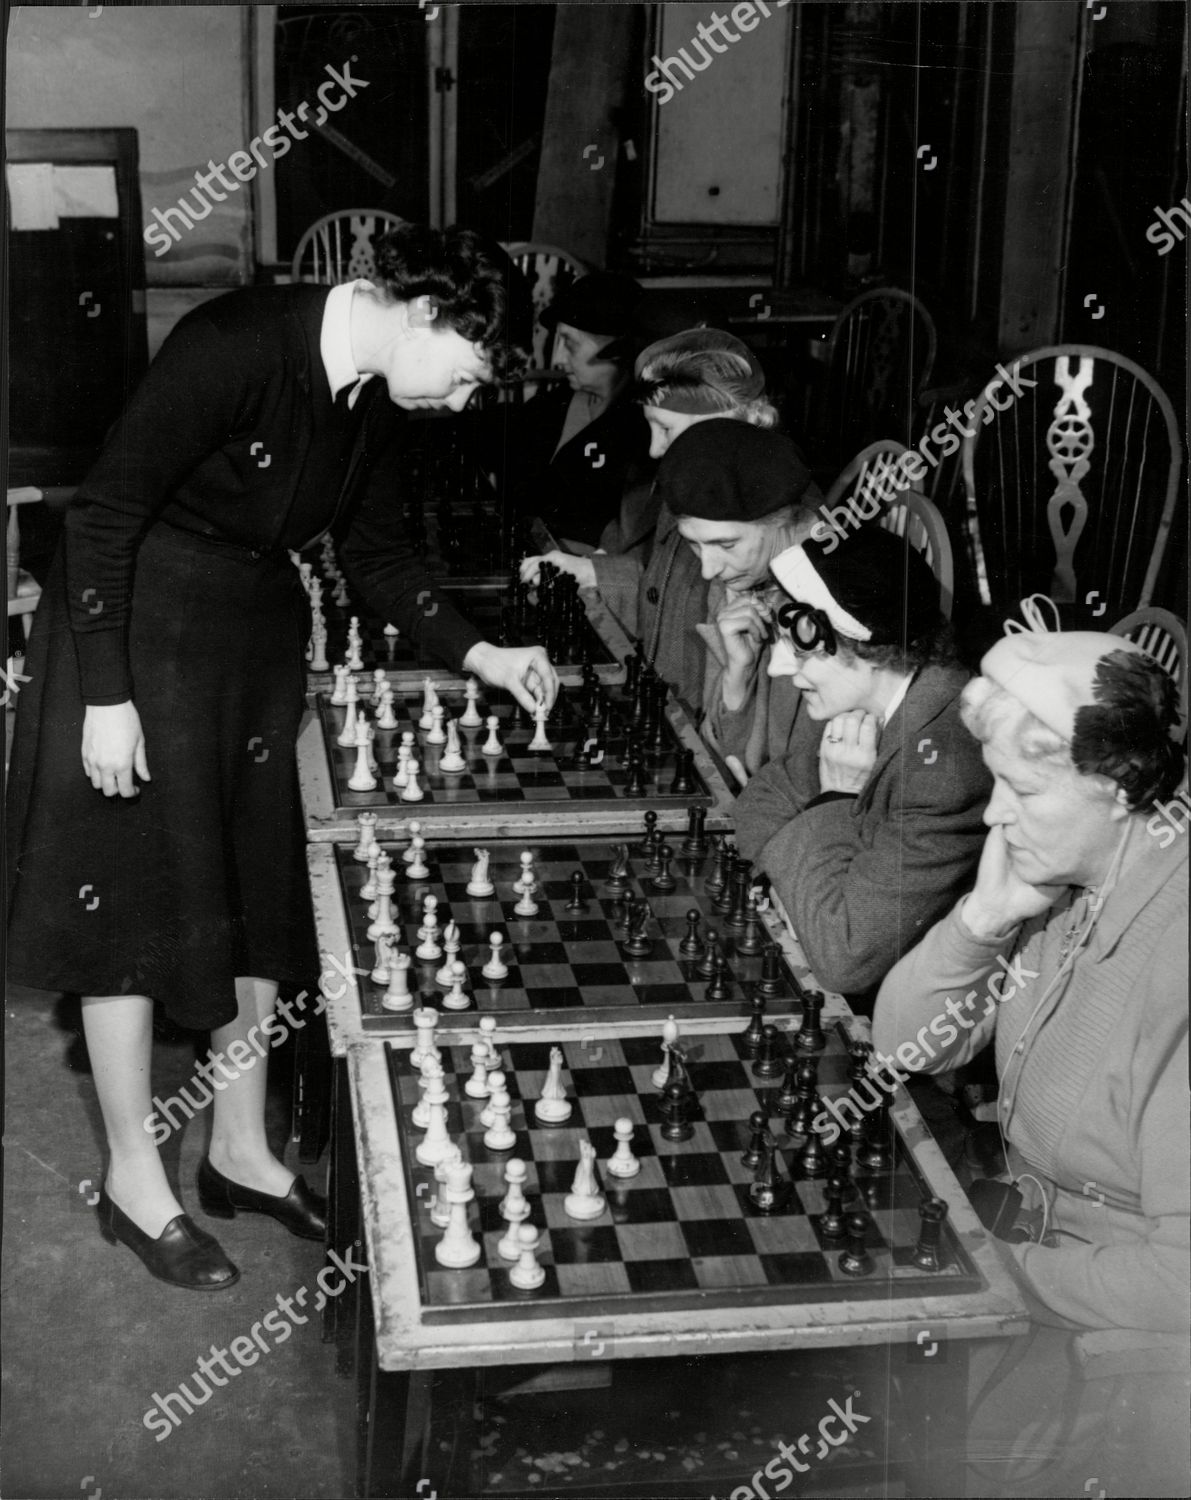 Miss Eileen Tranmer The British Women's Champion Chess Player Pictured Playing Some Of The Glasgow Ladies Chess Club At The Green's Playhouse Cafe Glasgow.